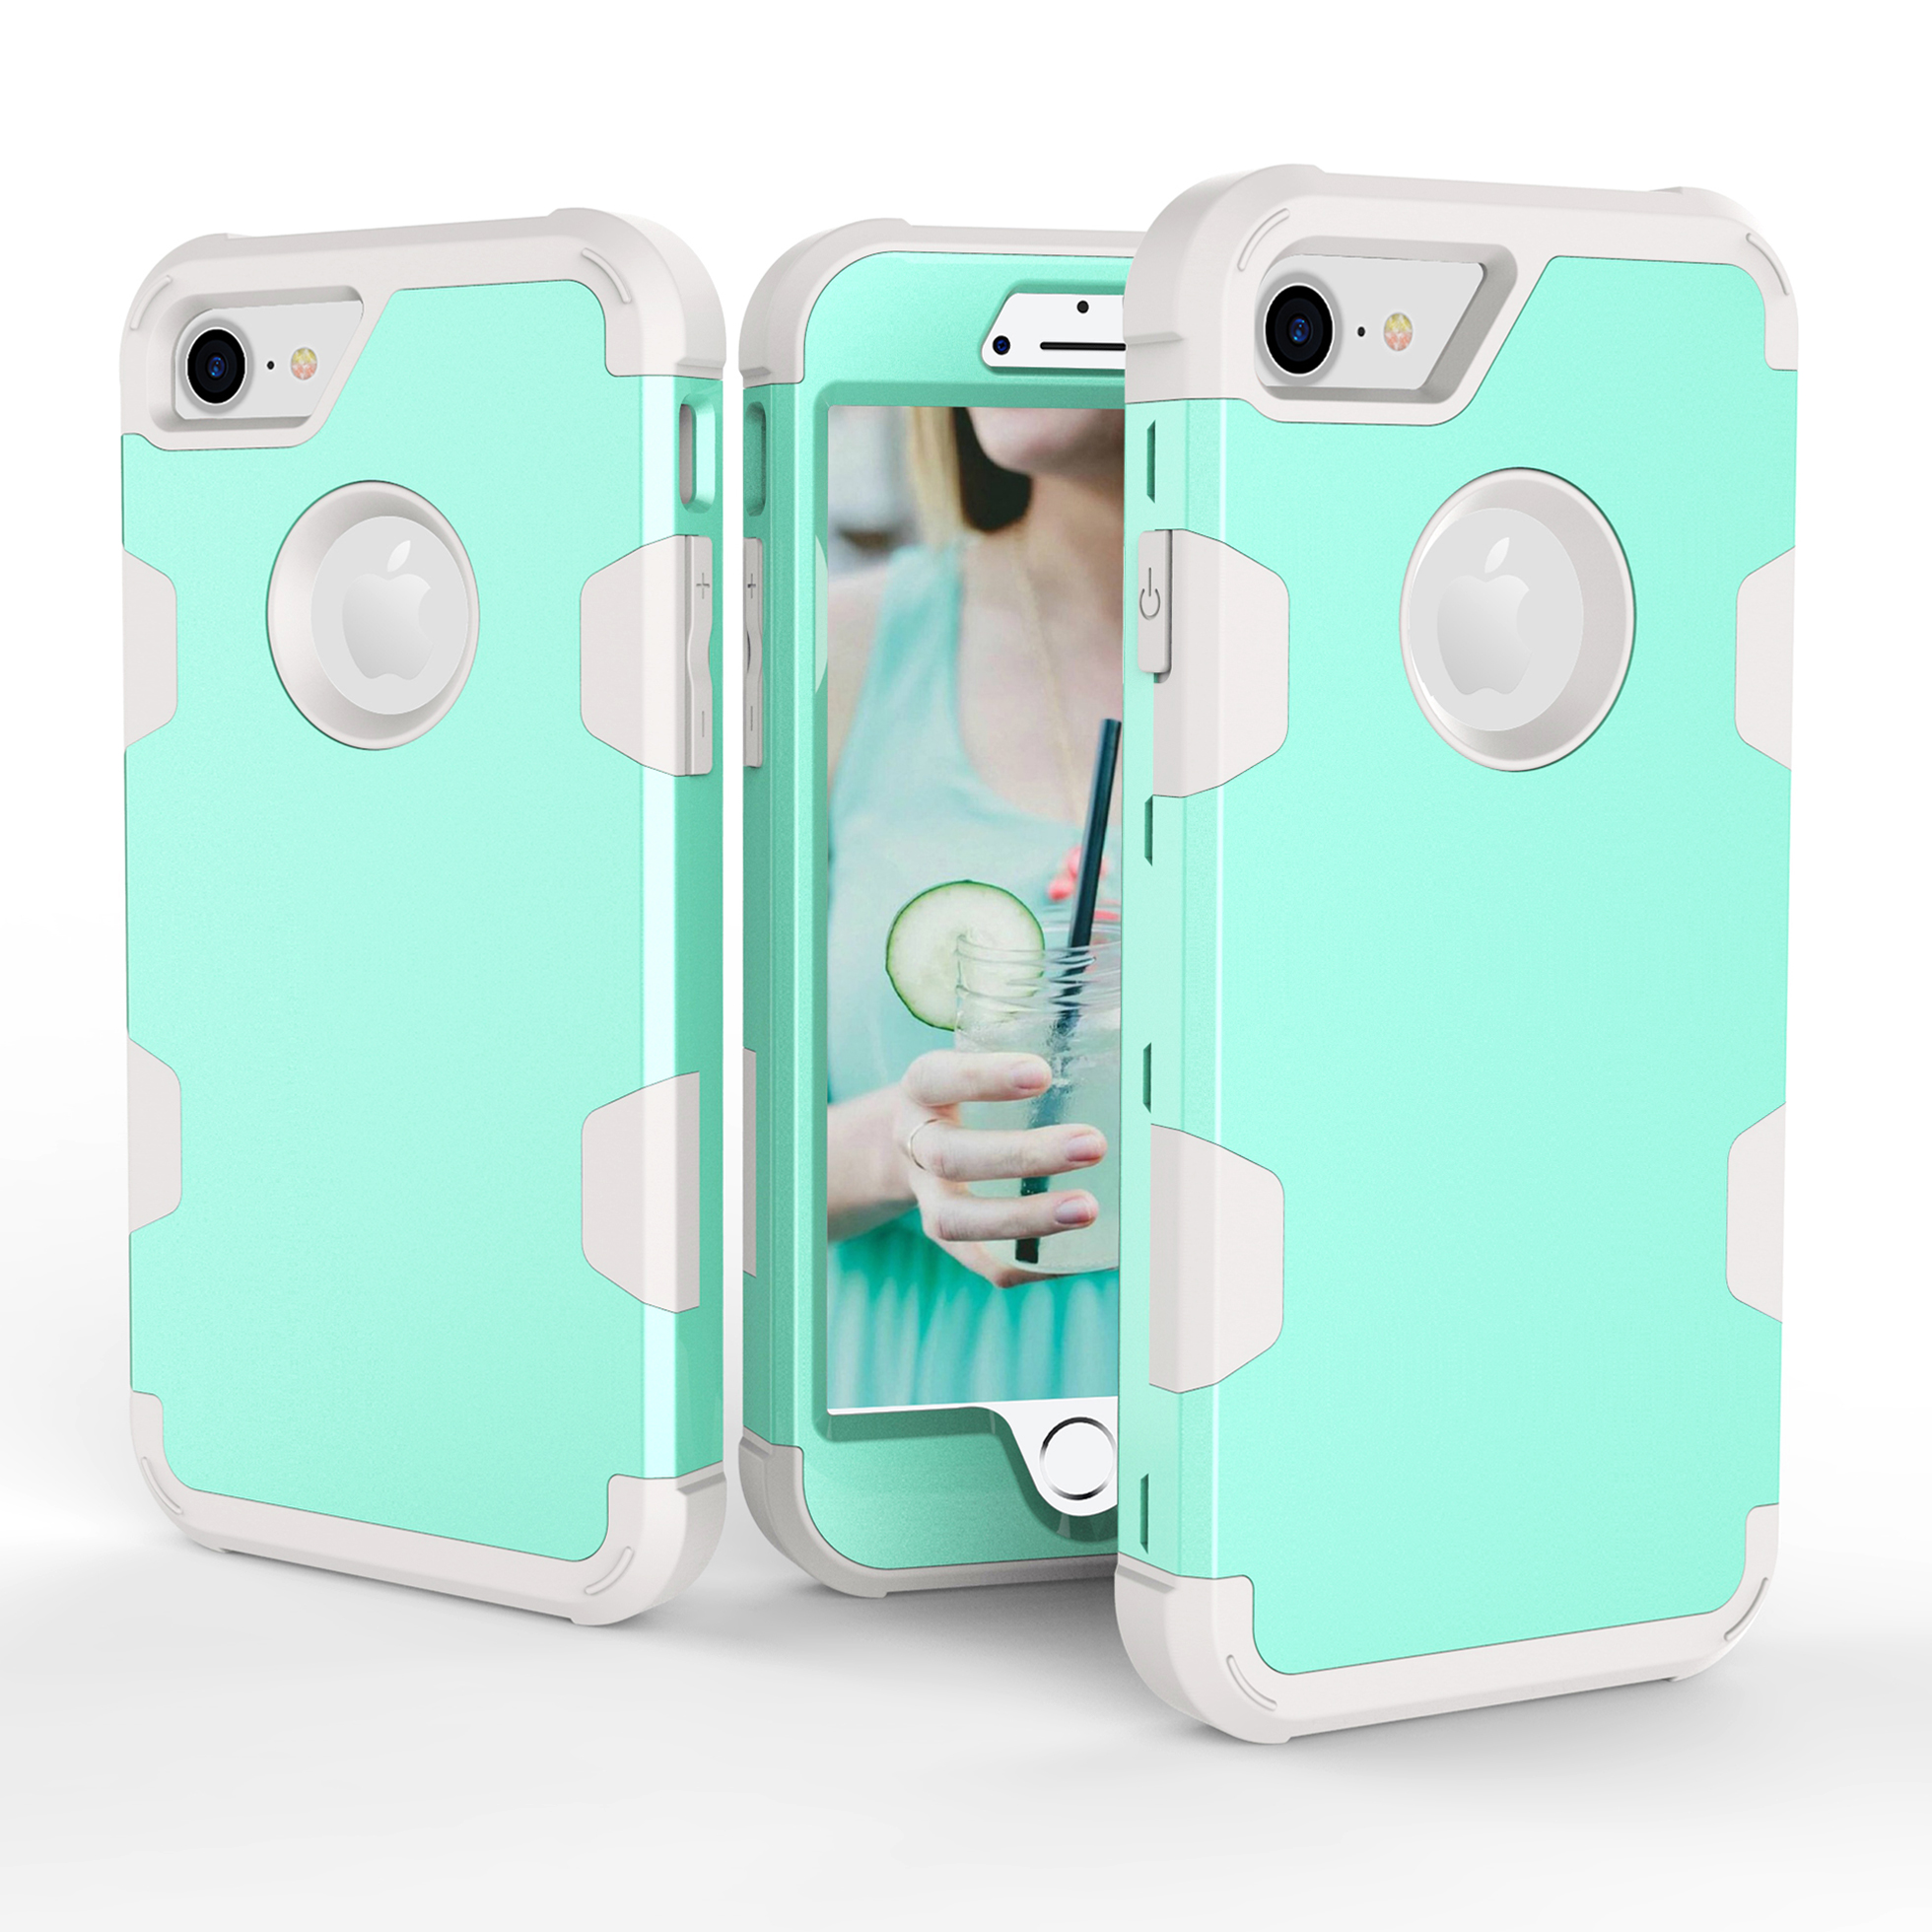 For iPhone 7 PC+ Silicone 2 in 1 Hit Color Tri-proof Shockproof Dustproof Anti-fall Protective Cover Back Case Mint green + gray